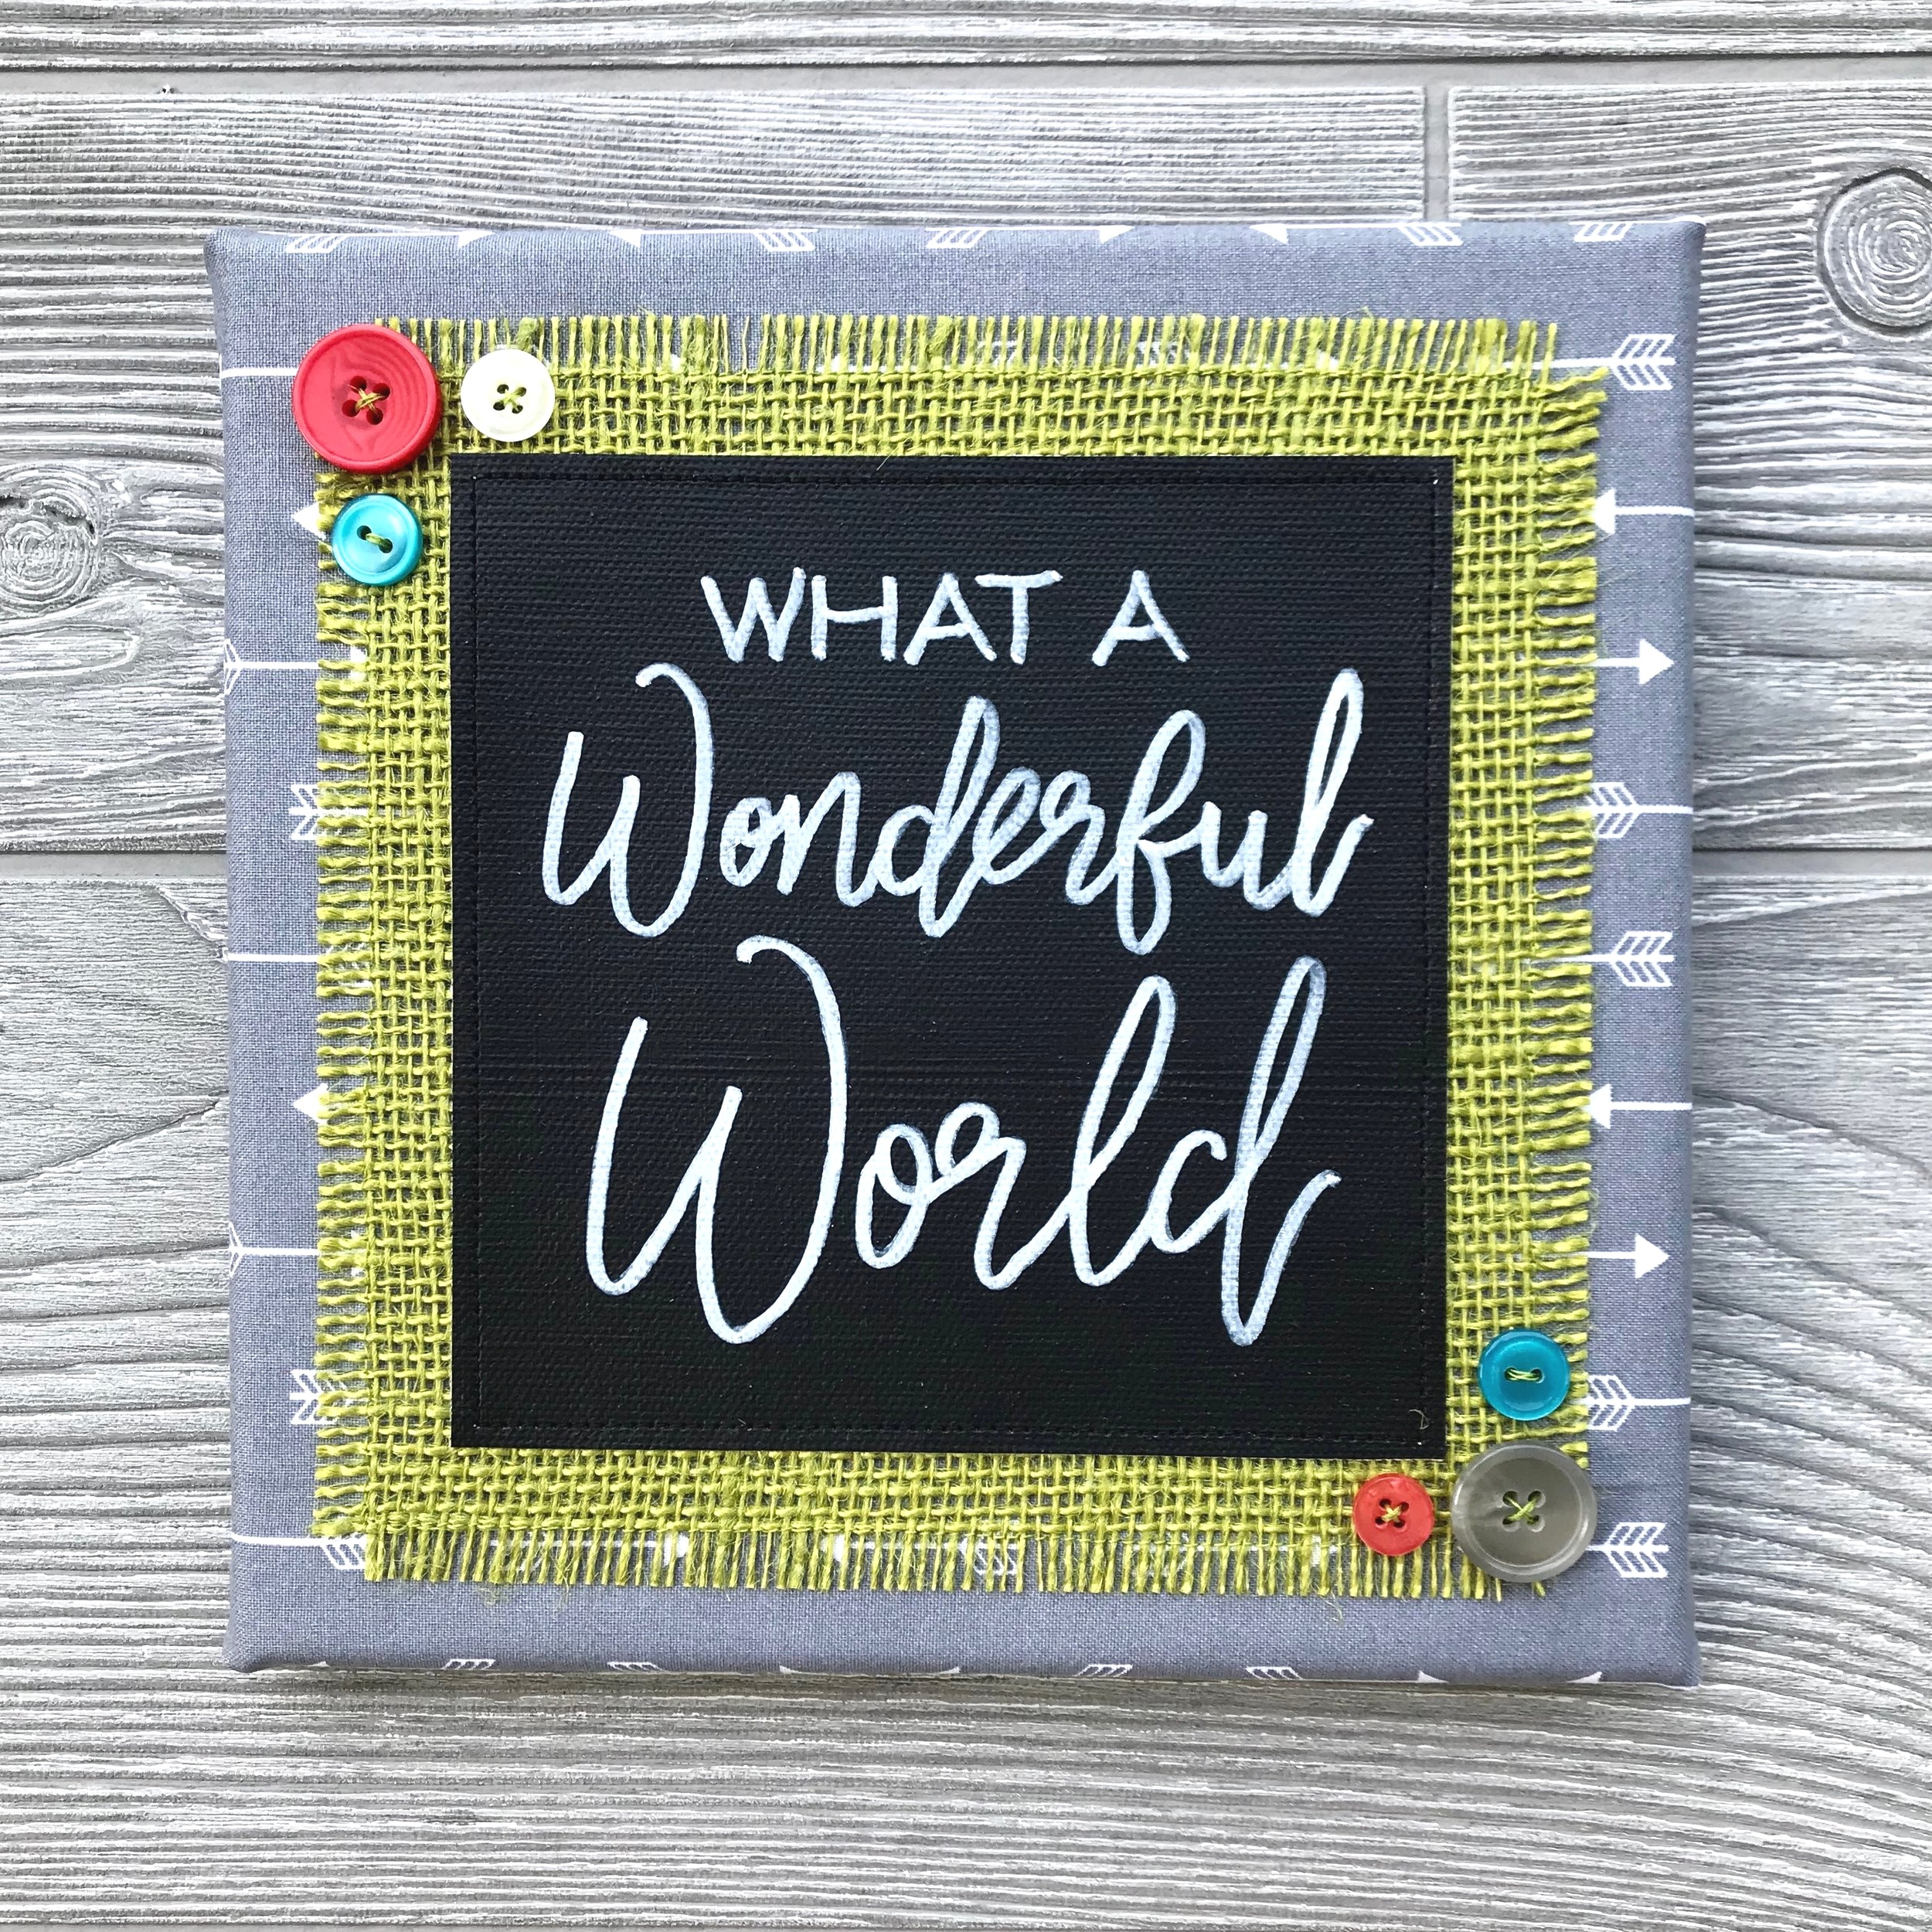 "What a Wonderful World - We live in a crazy, chaotic and often confusing world. But it's a perfectly wonderful world, and we forge perfectly wonderful lives here. Let this artwork remind you of all the good and beautiful things that surround you every day—all the things that make life so sweet!8""x8"" Handmade Literary ArtworkElements: hand-painted and hand-lettered canvas, colorful burlap, patterned fabric, coordinating buttons, wood frame, claw hangerPrice: $25 (includes US-based shipping)"